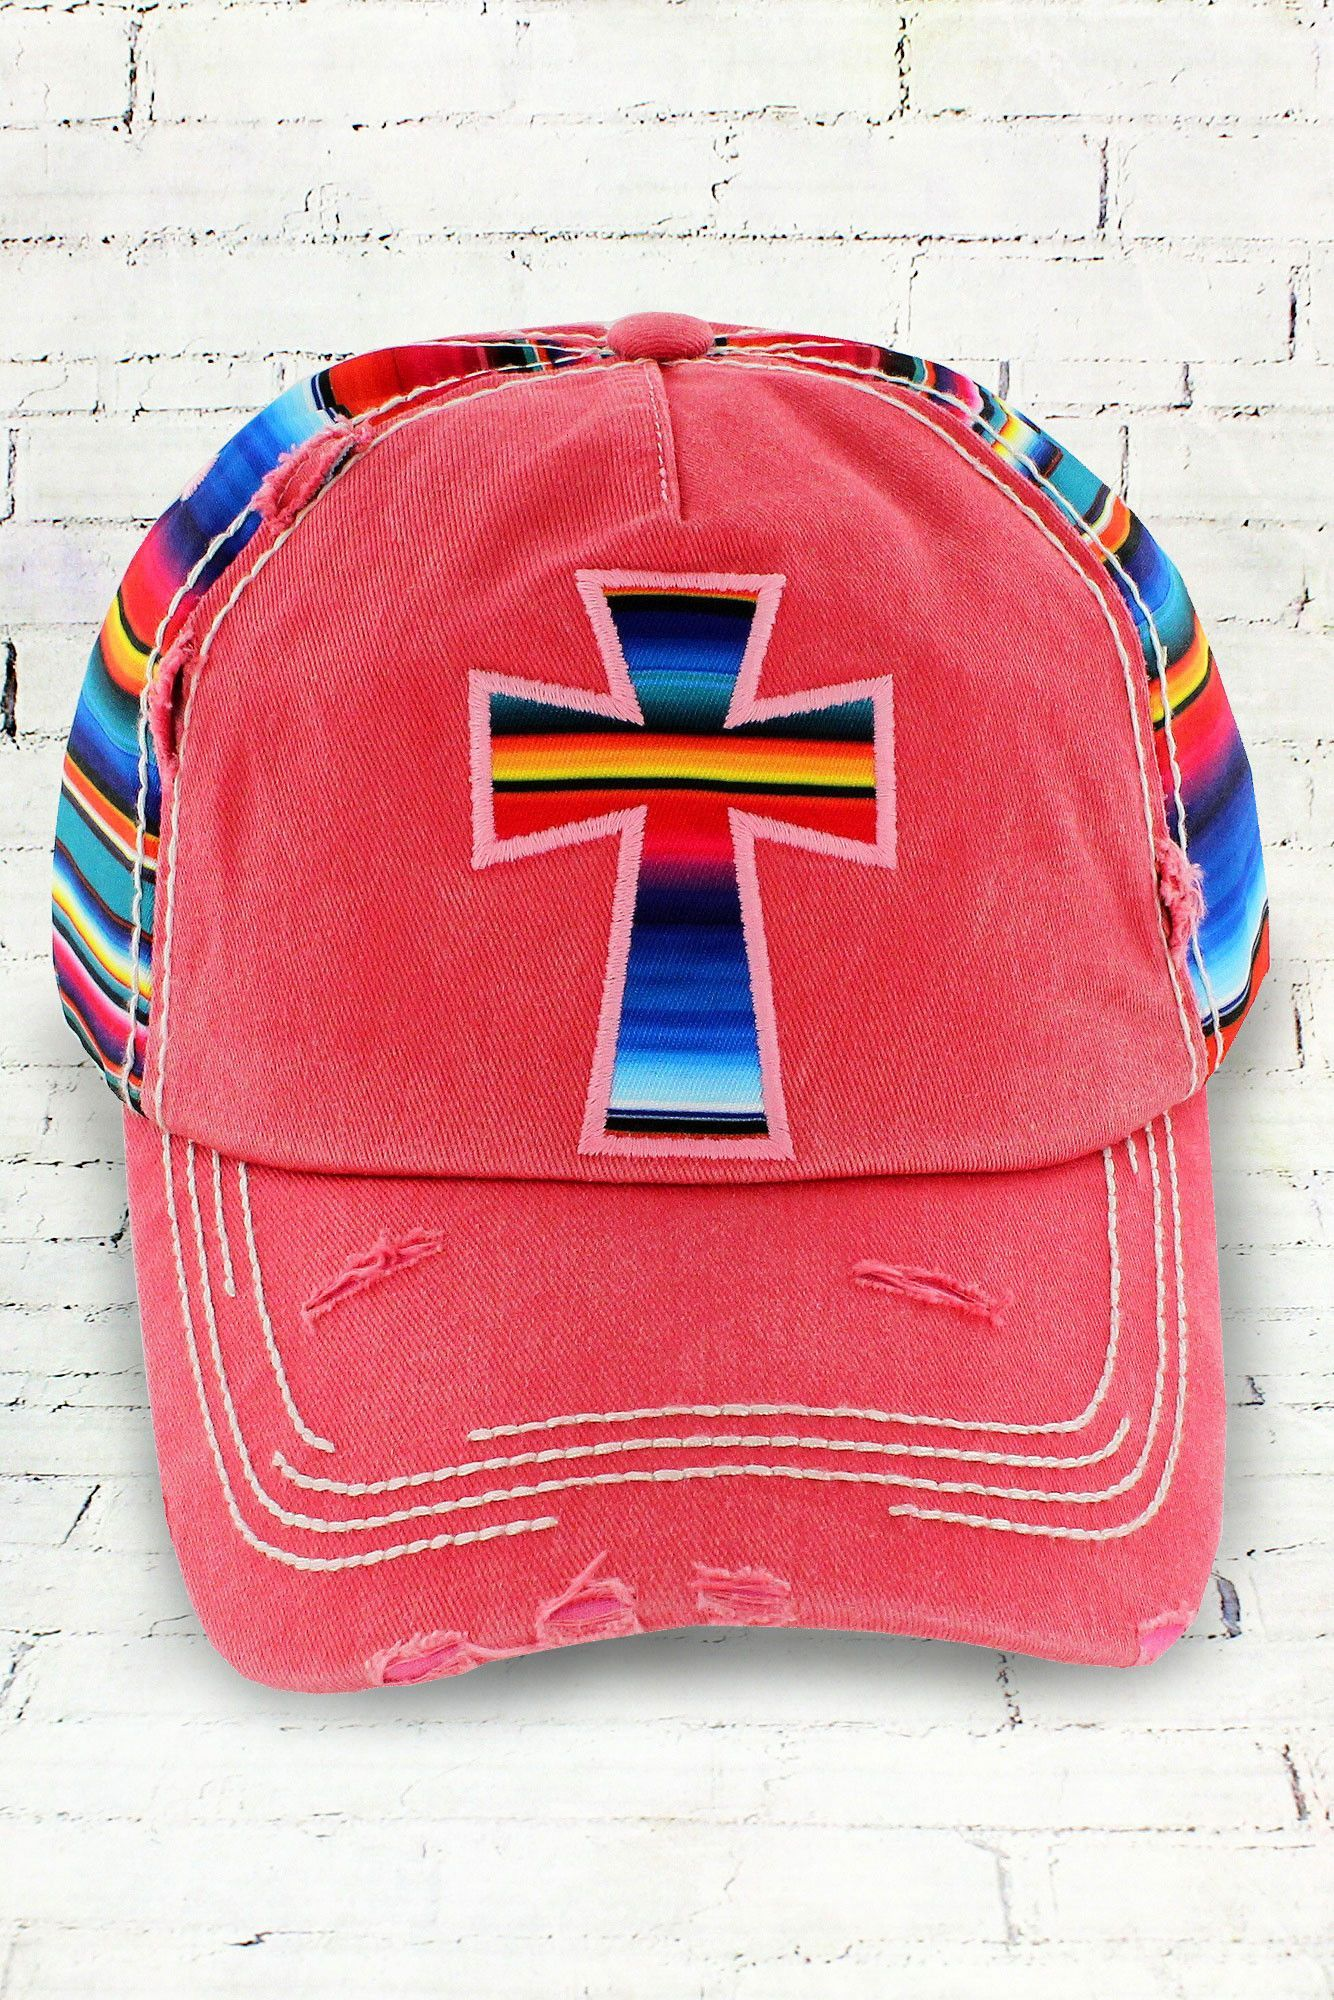 Distressed Salmon Serape Cross Cap #KBV-1074-SALMON